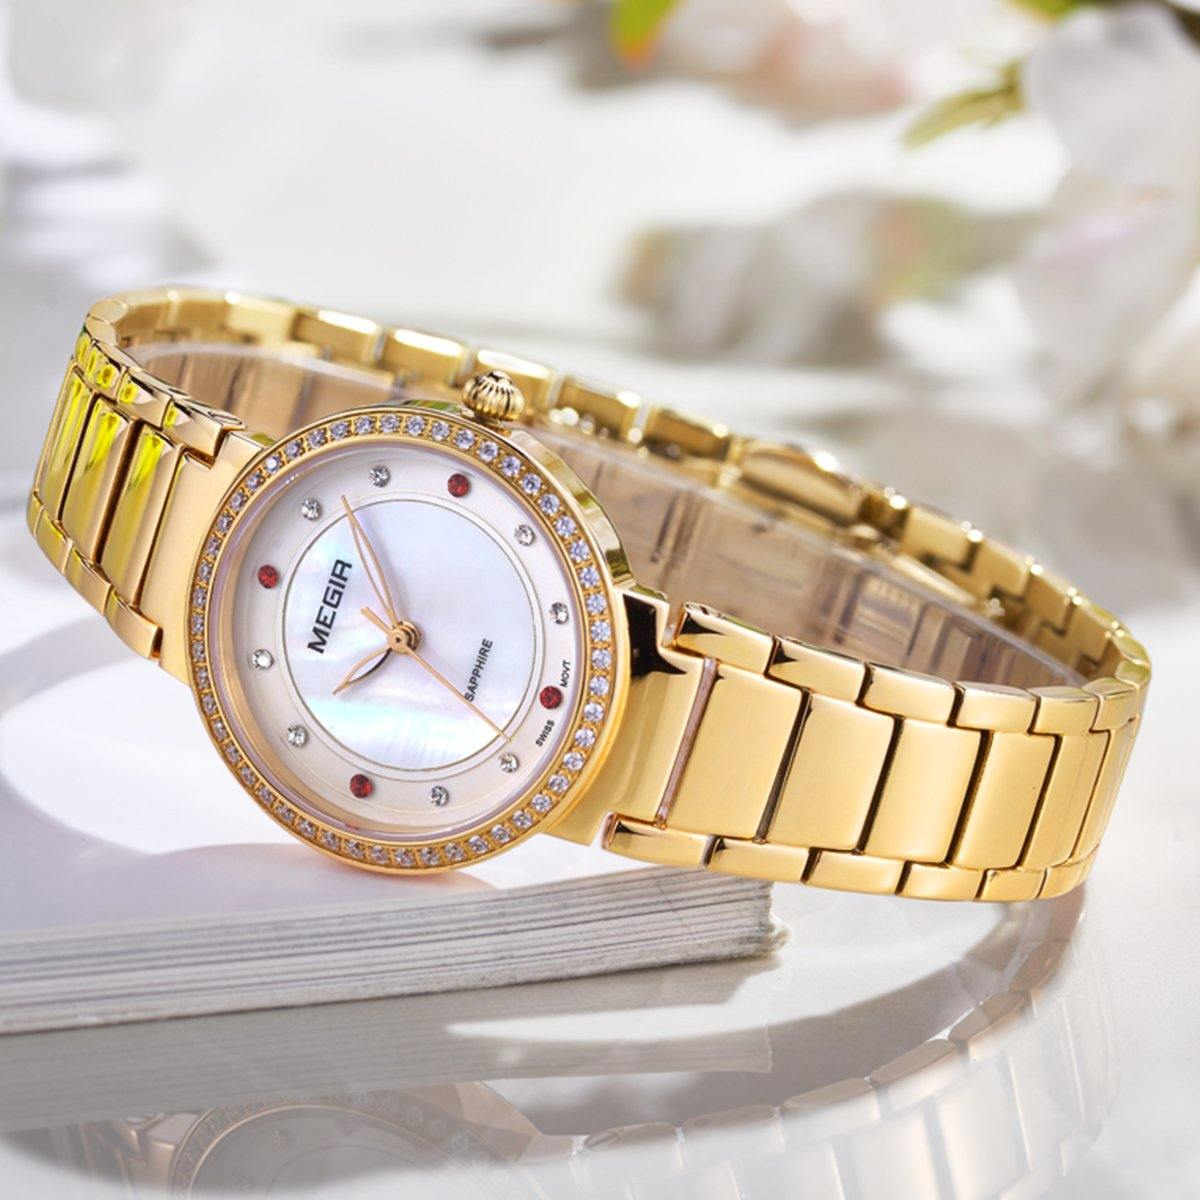 MEGIR Luxury Women Sapphire Watches Stainless Steel Ladies Quartz Watch Women 4164 - MEGIR